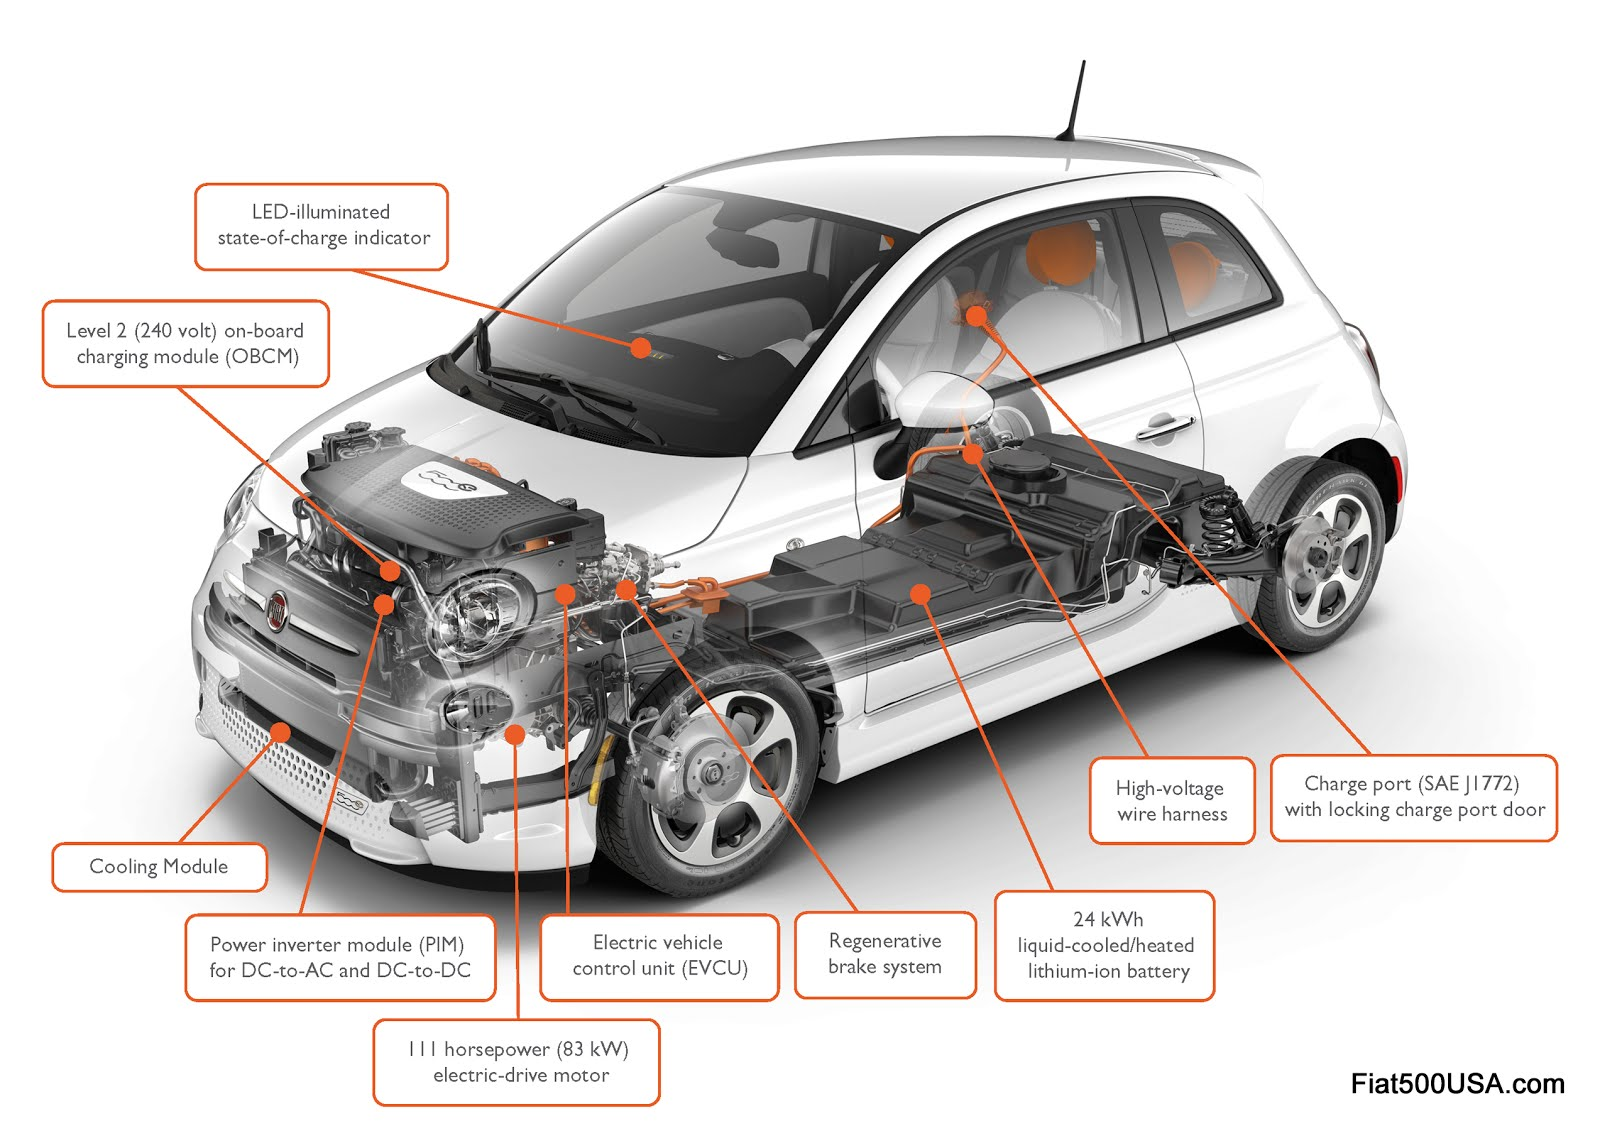 2013 fiat 500 fuse box diagram official site wiring diagrams2012 fiat 500 wiring diagram schematic diagram [ 1600 x 1131 Pixel ]